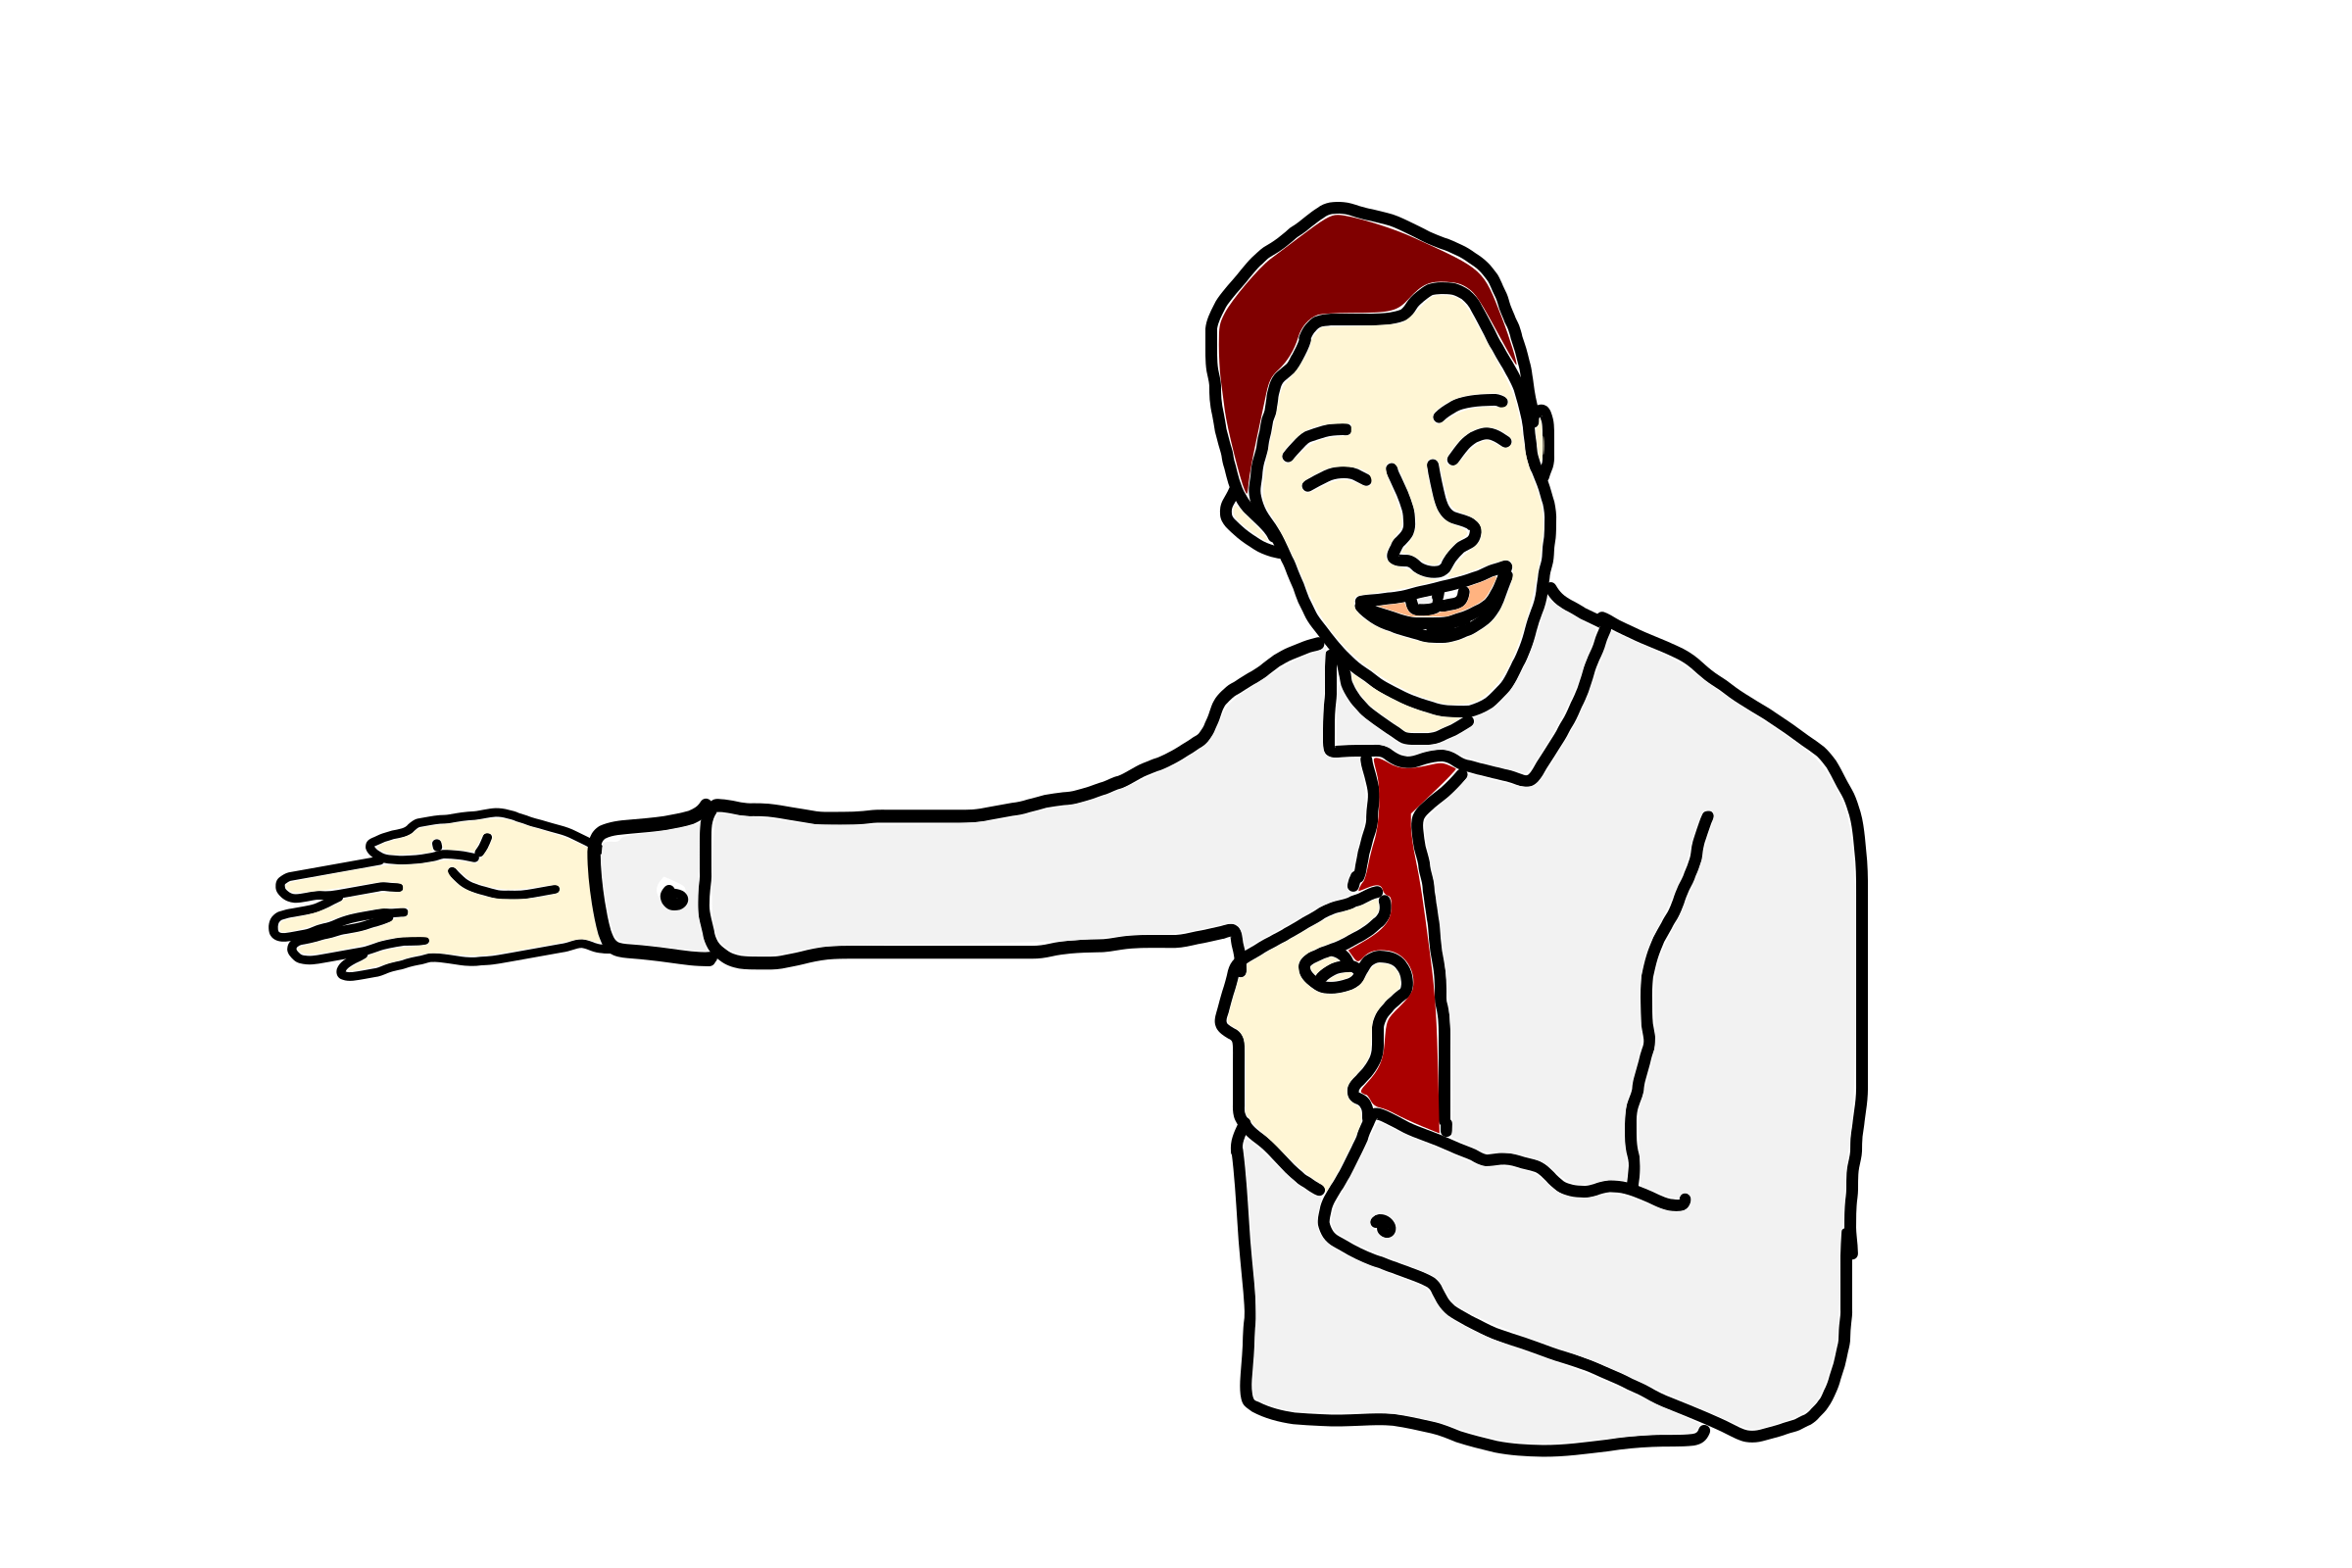 Proud clipart self. Person pointing at himself